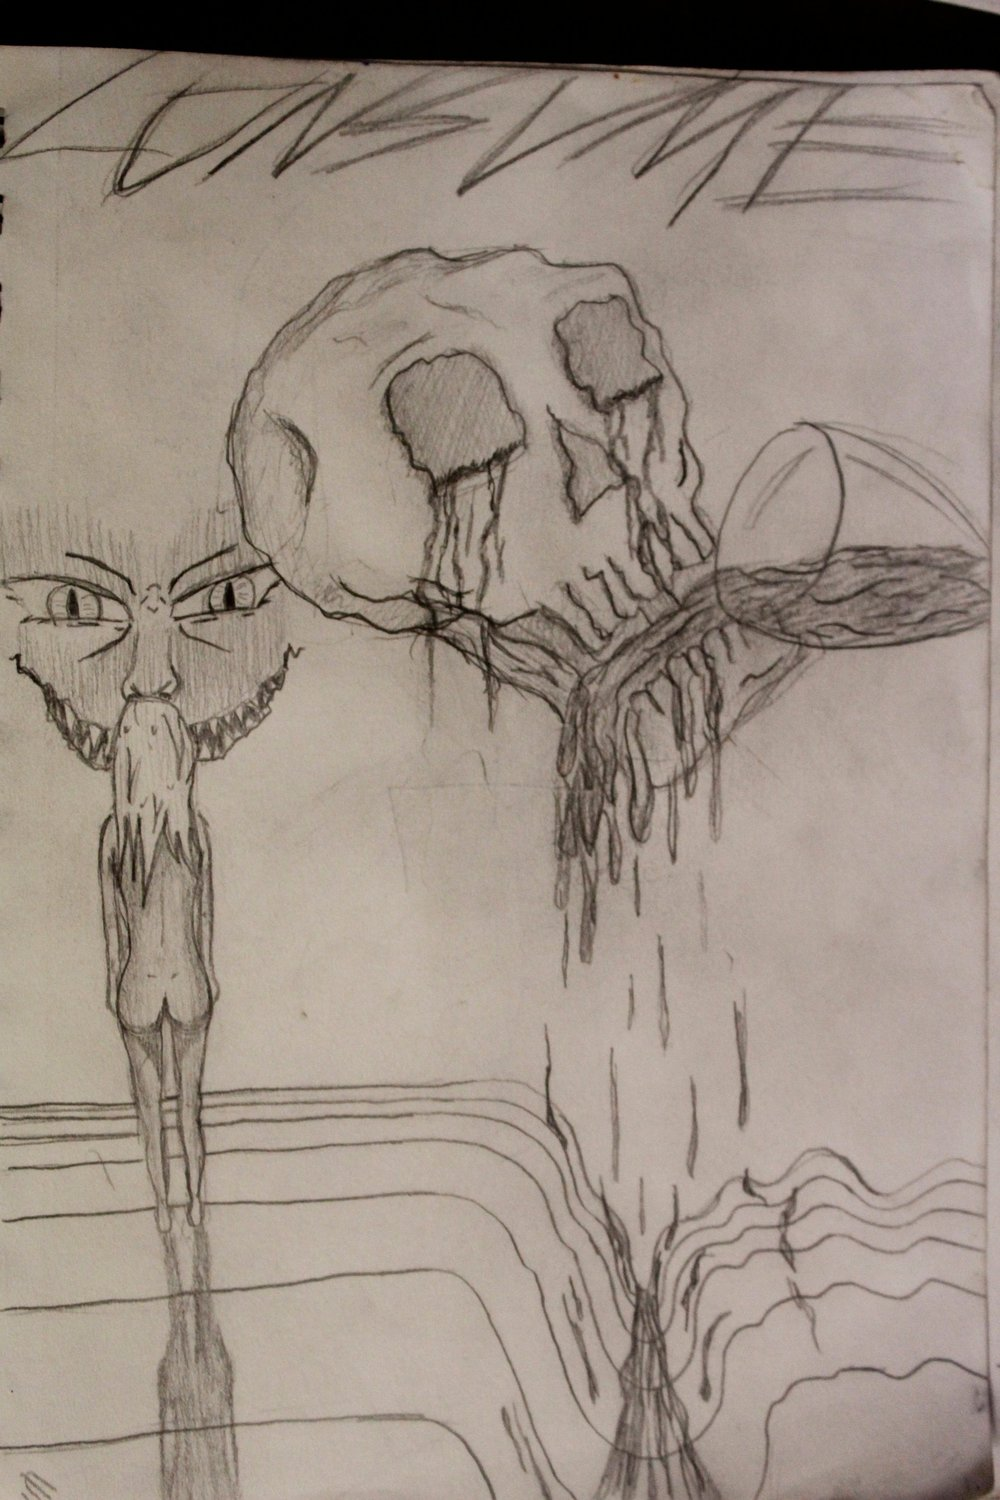 The evil in society in one picture. The skull drinking himself to death is me